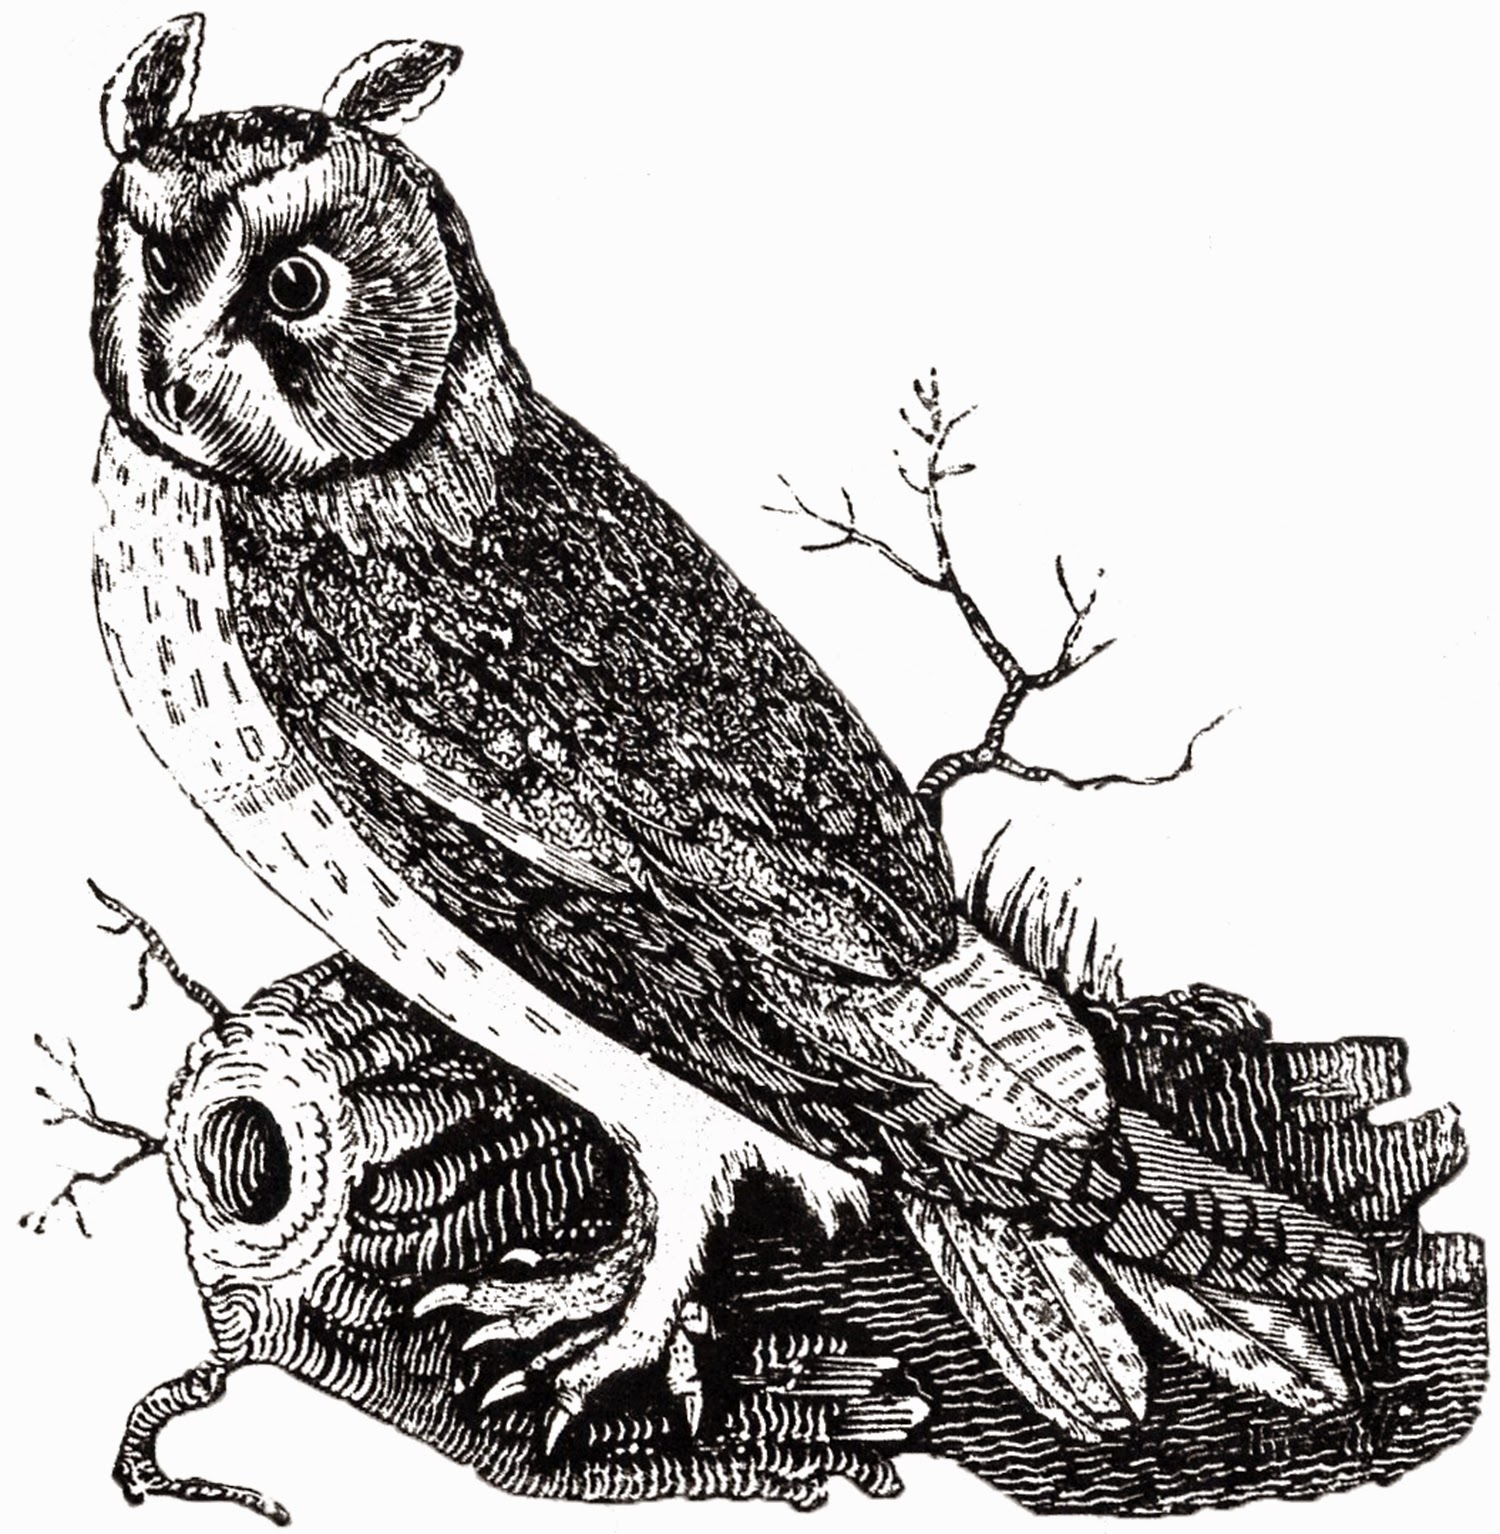 http://thegraphicsfairy.com/free-vintage-owl-image/